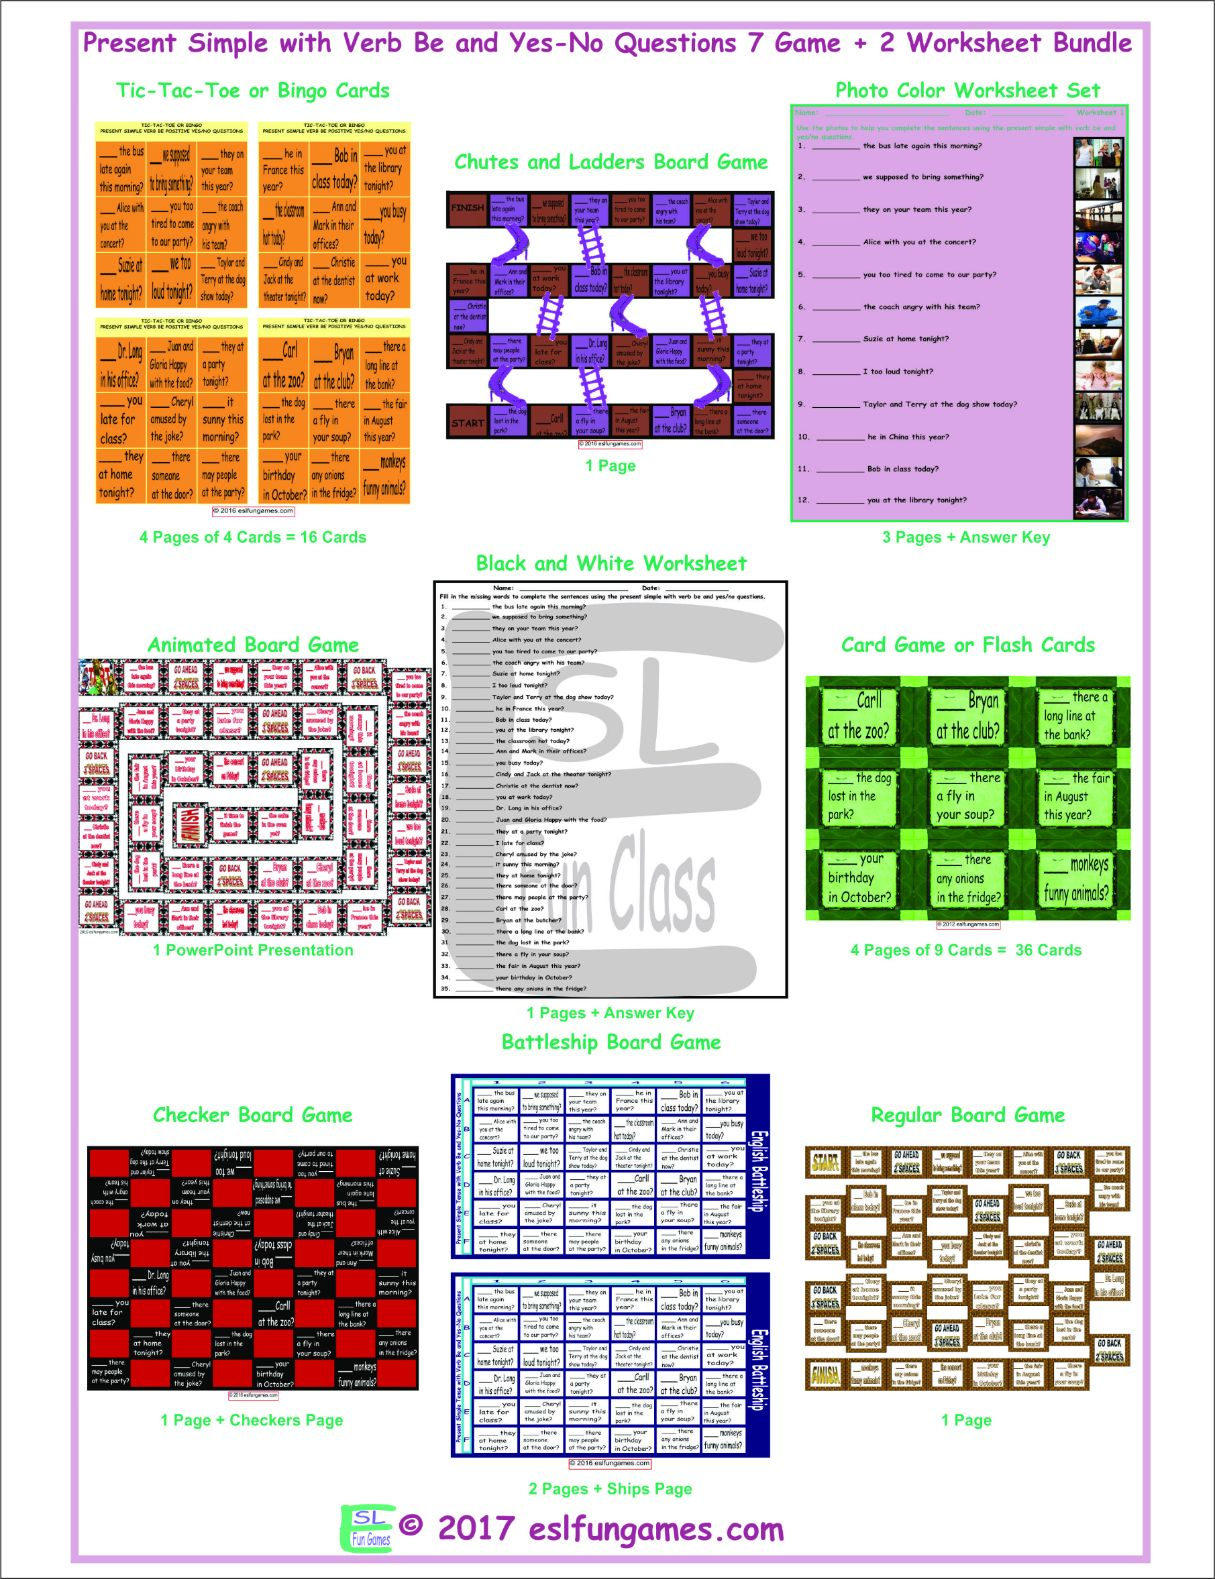 Present Simple With Verb Be And Yes No Questions 7 Game Plus 2 Worksheet Bundle By Eslfungames